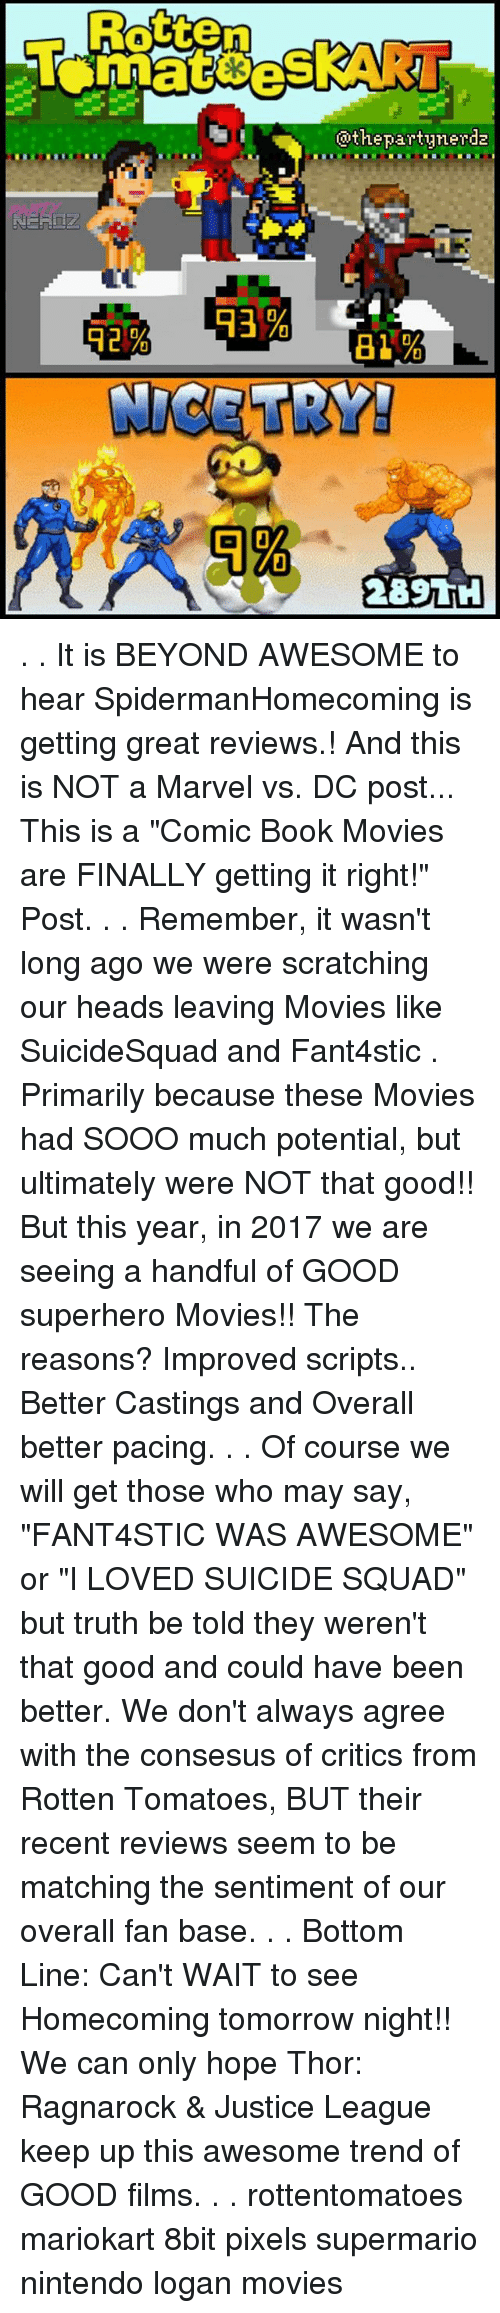 """truth be told: Rotten  @thepartynerda . . It is BEYOND AWESOME to hear SpidermanHomecoming is getting great reviews.! And this is NOT a Marvel vs. DC post... This is a """"Comic Book Movies are FINALLY getting it right!"""" Post. . . Remember, it wasn't long ago we were scratching our heads leaving Movies like SuicideSquad and Fant4stic . Primarily because these Movies had SOOO much potential, but ultimately were NOT that good!! But this year, in 2017 we are seeing a handful of GOOD superhero Movies!! The reasons? Improved scripts.. Better Castings and Overall better pacing. . . Of course we will get those who may say, """"FANT4STIC WAS AWESOME"""" or """"I LOVED SUICIDE SQUAD"""" but truth be told they weren't that good and could have been better. We don't always agree with the consesus of critics from Rotten Tomatoes, BUT their recent reviews seem to be matching the sentiment of our overall fan base. . . Bottom Line: Can't WAIT to see Homecoming tomorrow night!! We can only hope Thor: Ragnarock & Justice League keep up this awesome trend of GOOD films. . . rottentomatoes mariokart 8bit pixels supermario nintendo logan movies"""